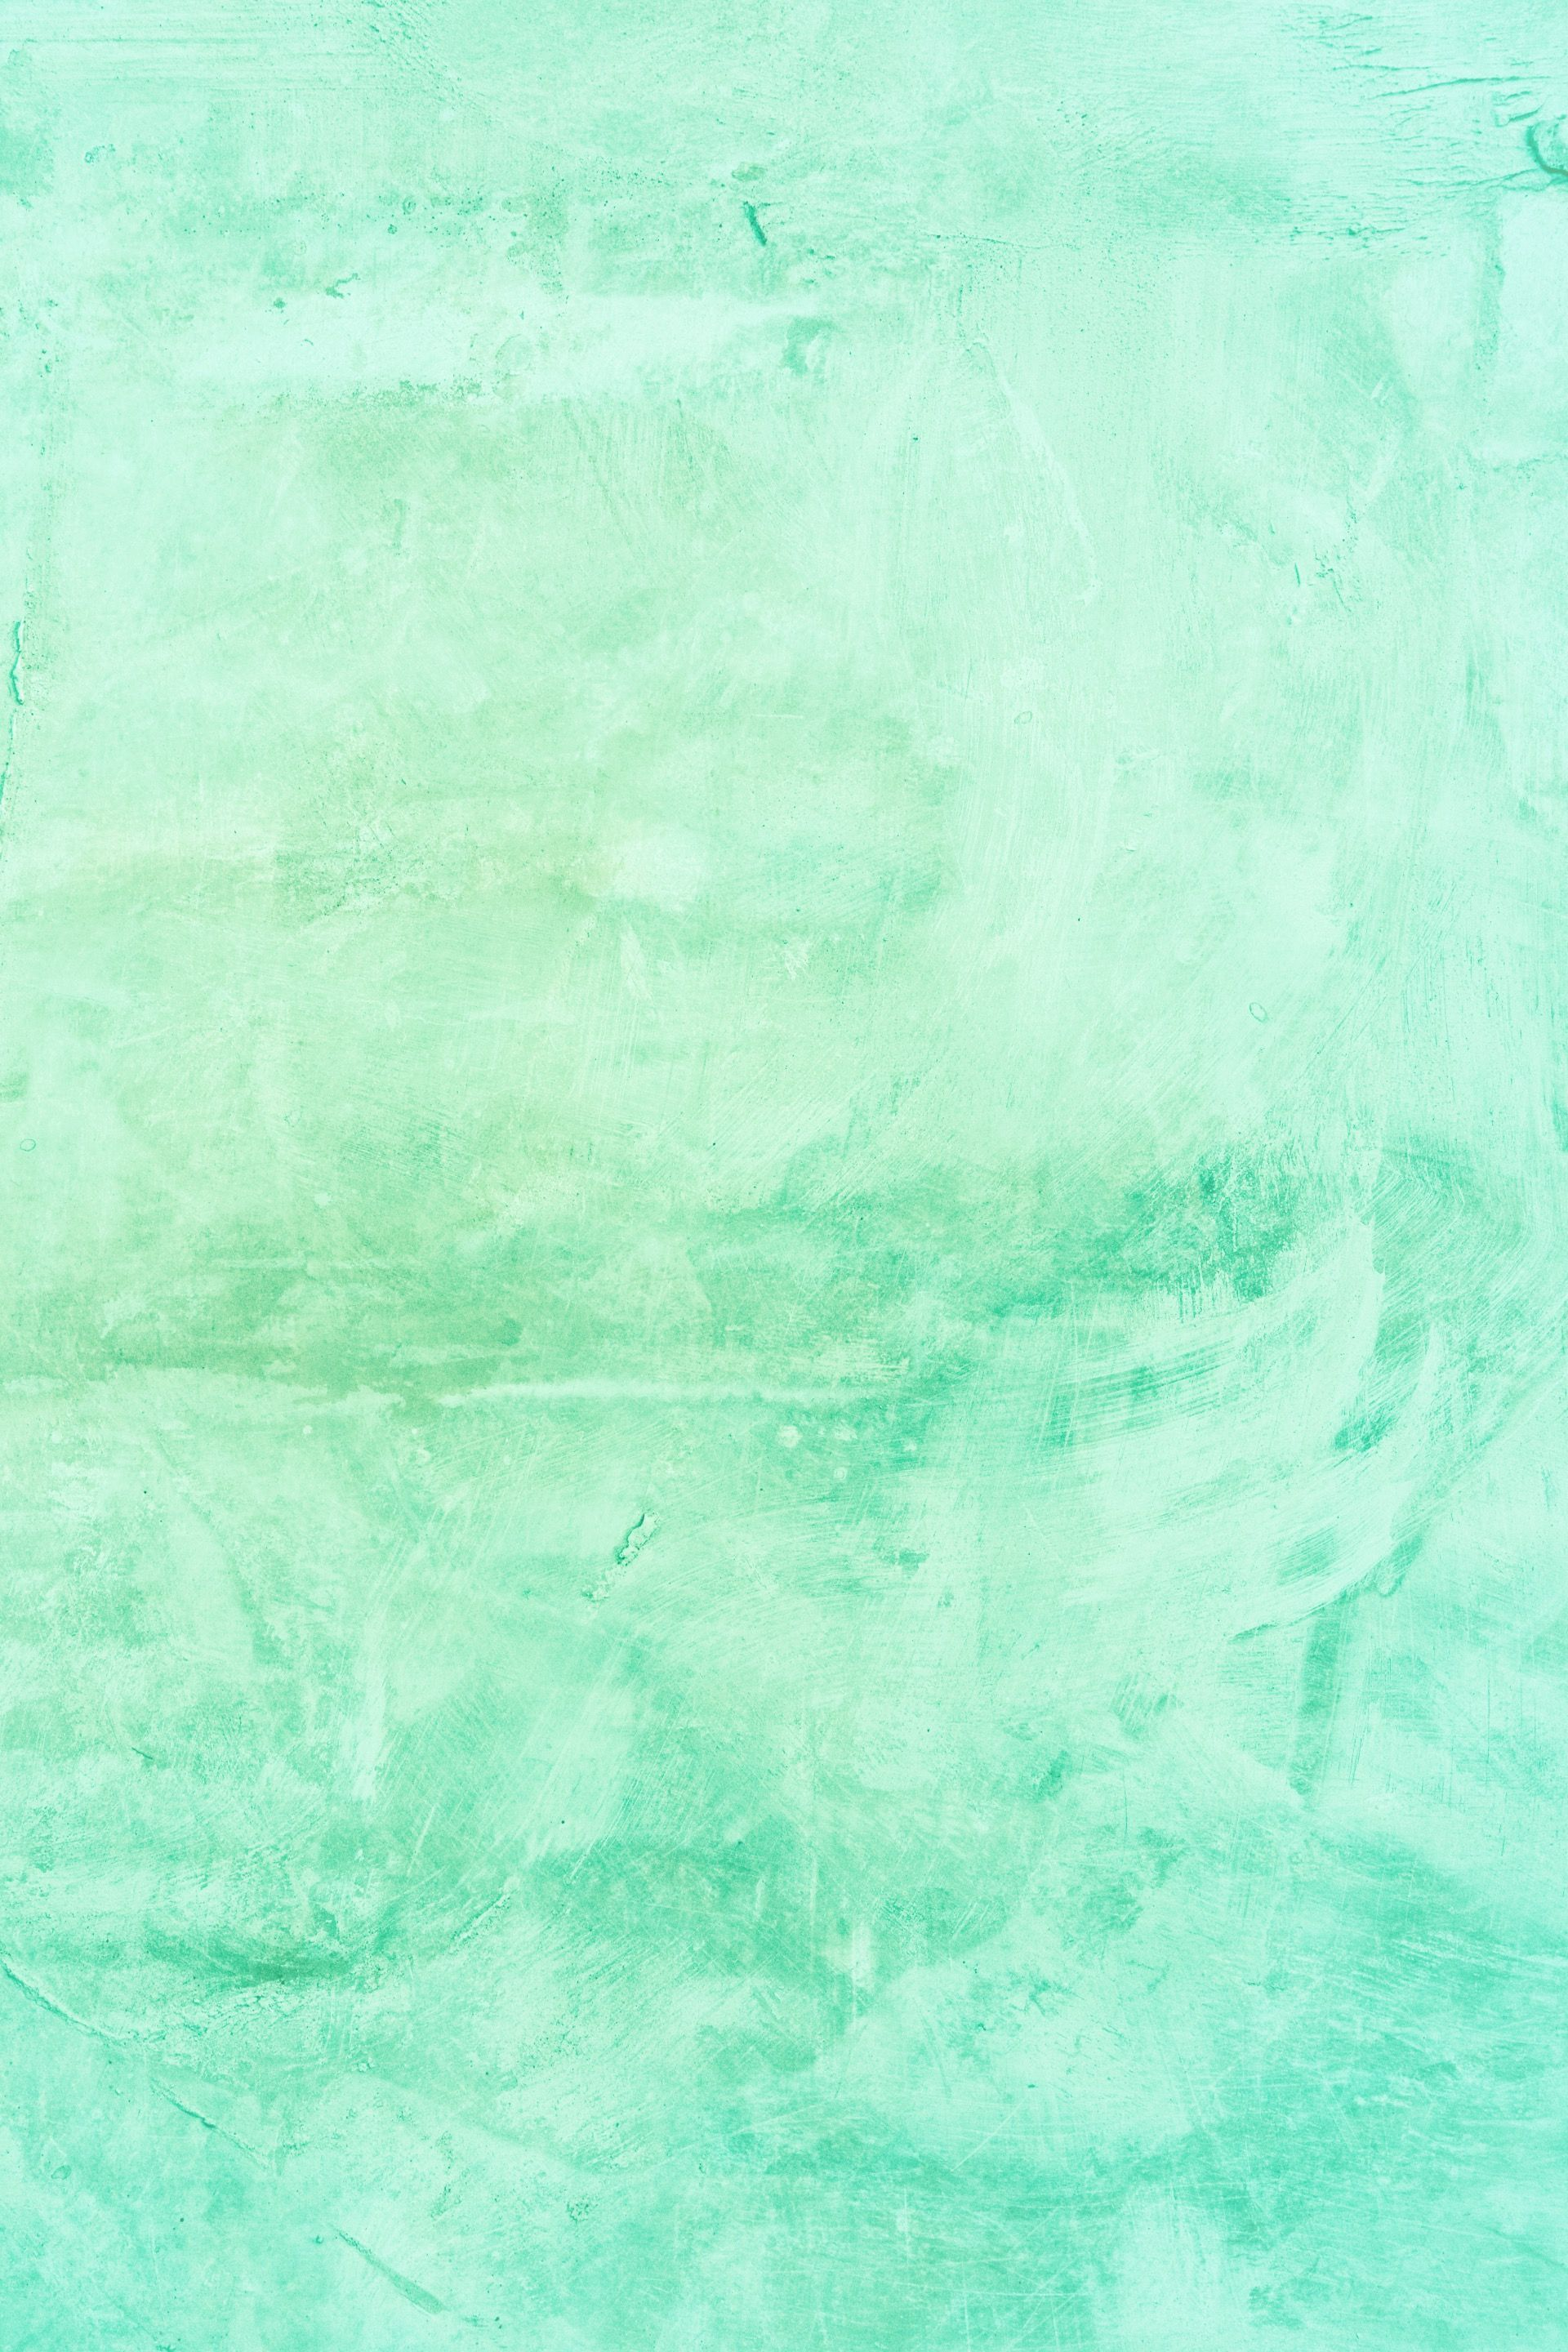 Mint Green Aesthetic Wallpapers - Top Free Mint Green ...